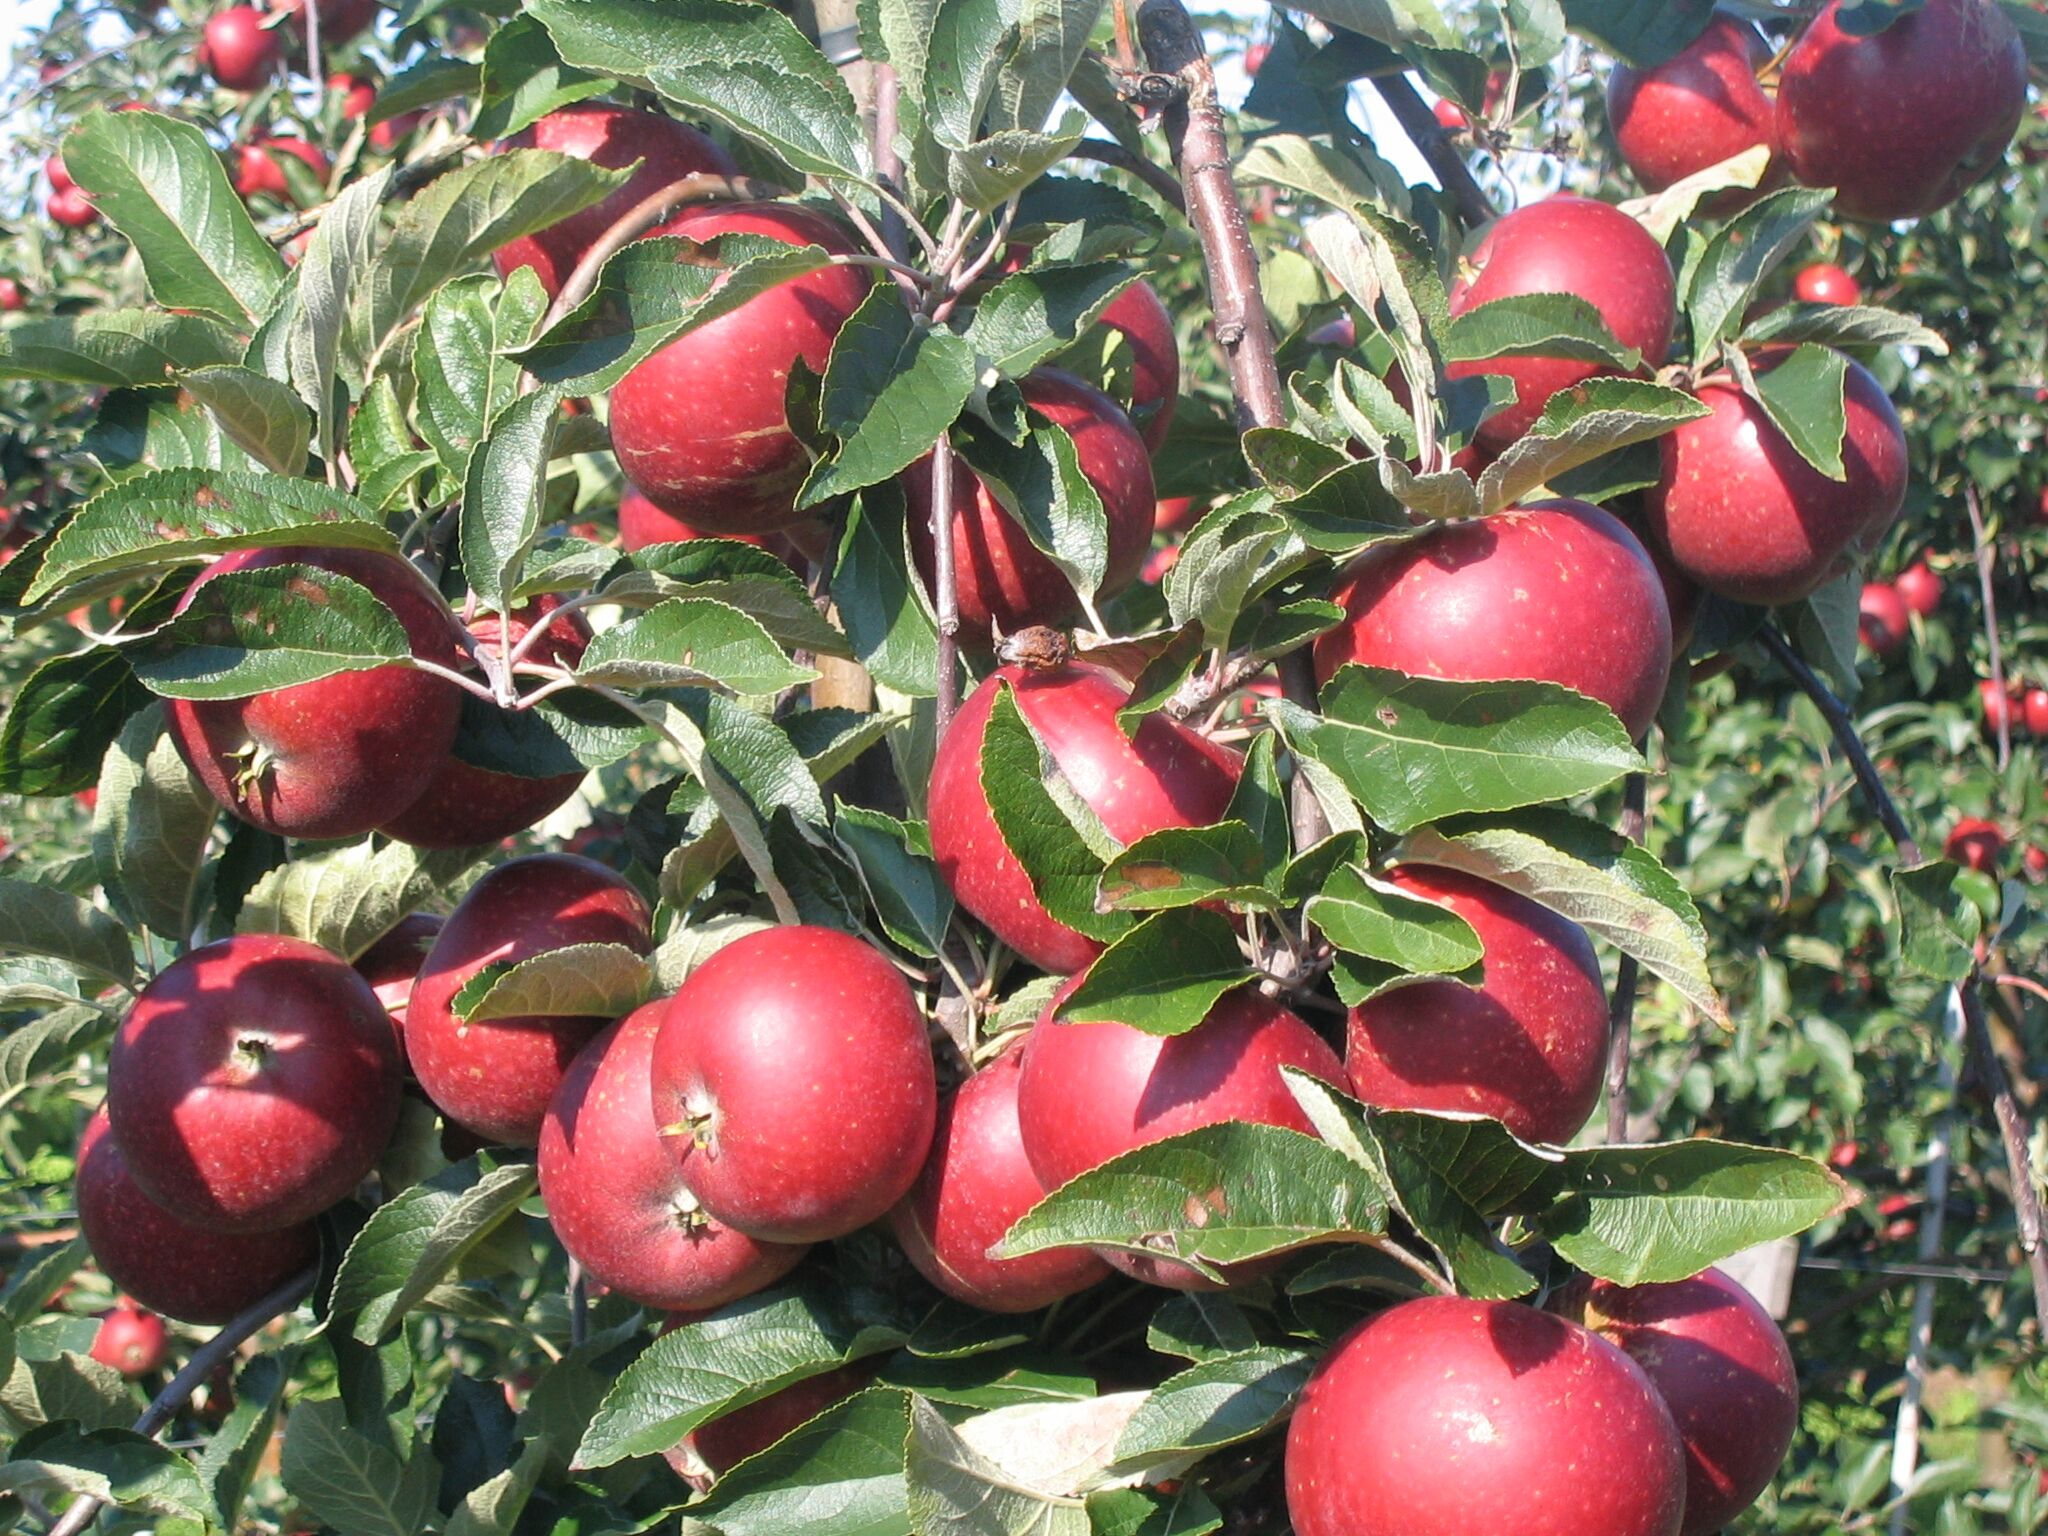 Apples from Cold Hand Winery's orchards